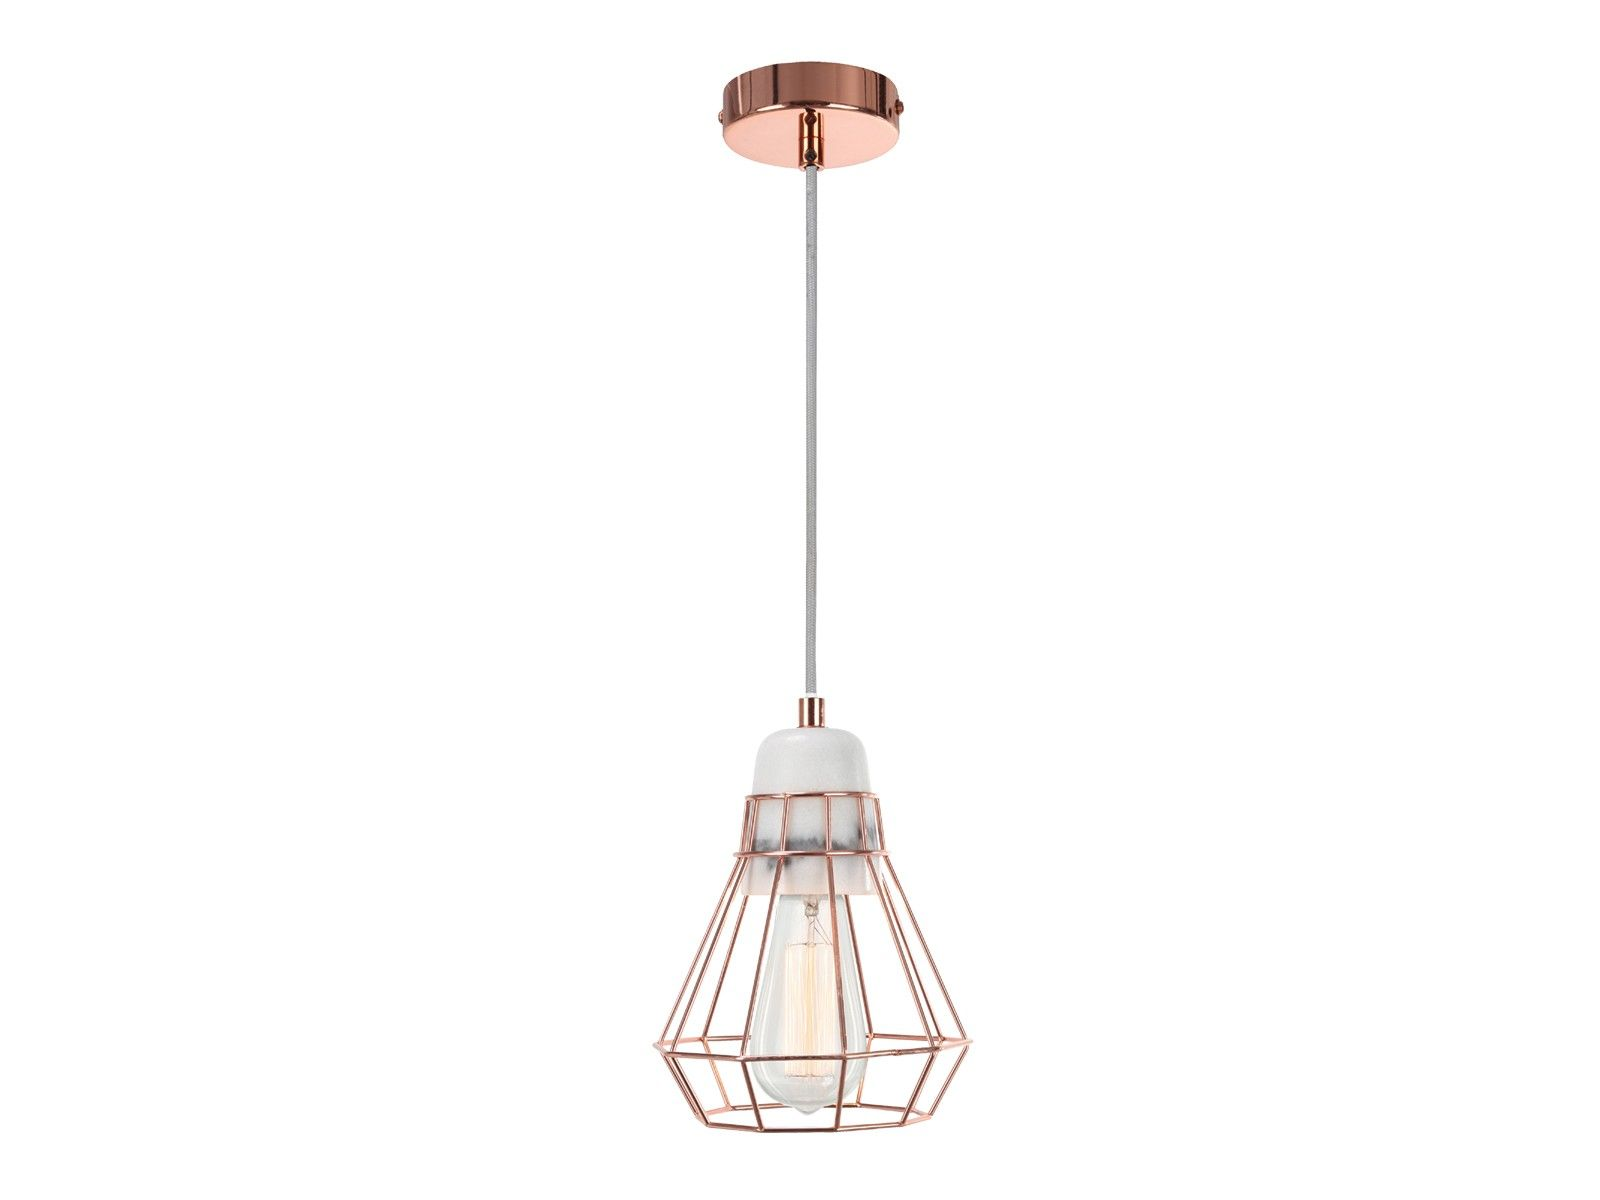 Ando 1 Light Pendant In Marble Copper Cage Modern Pendants Pendant Lights Cage Pendant Light Pendant Lighting Brass Cage